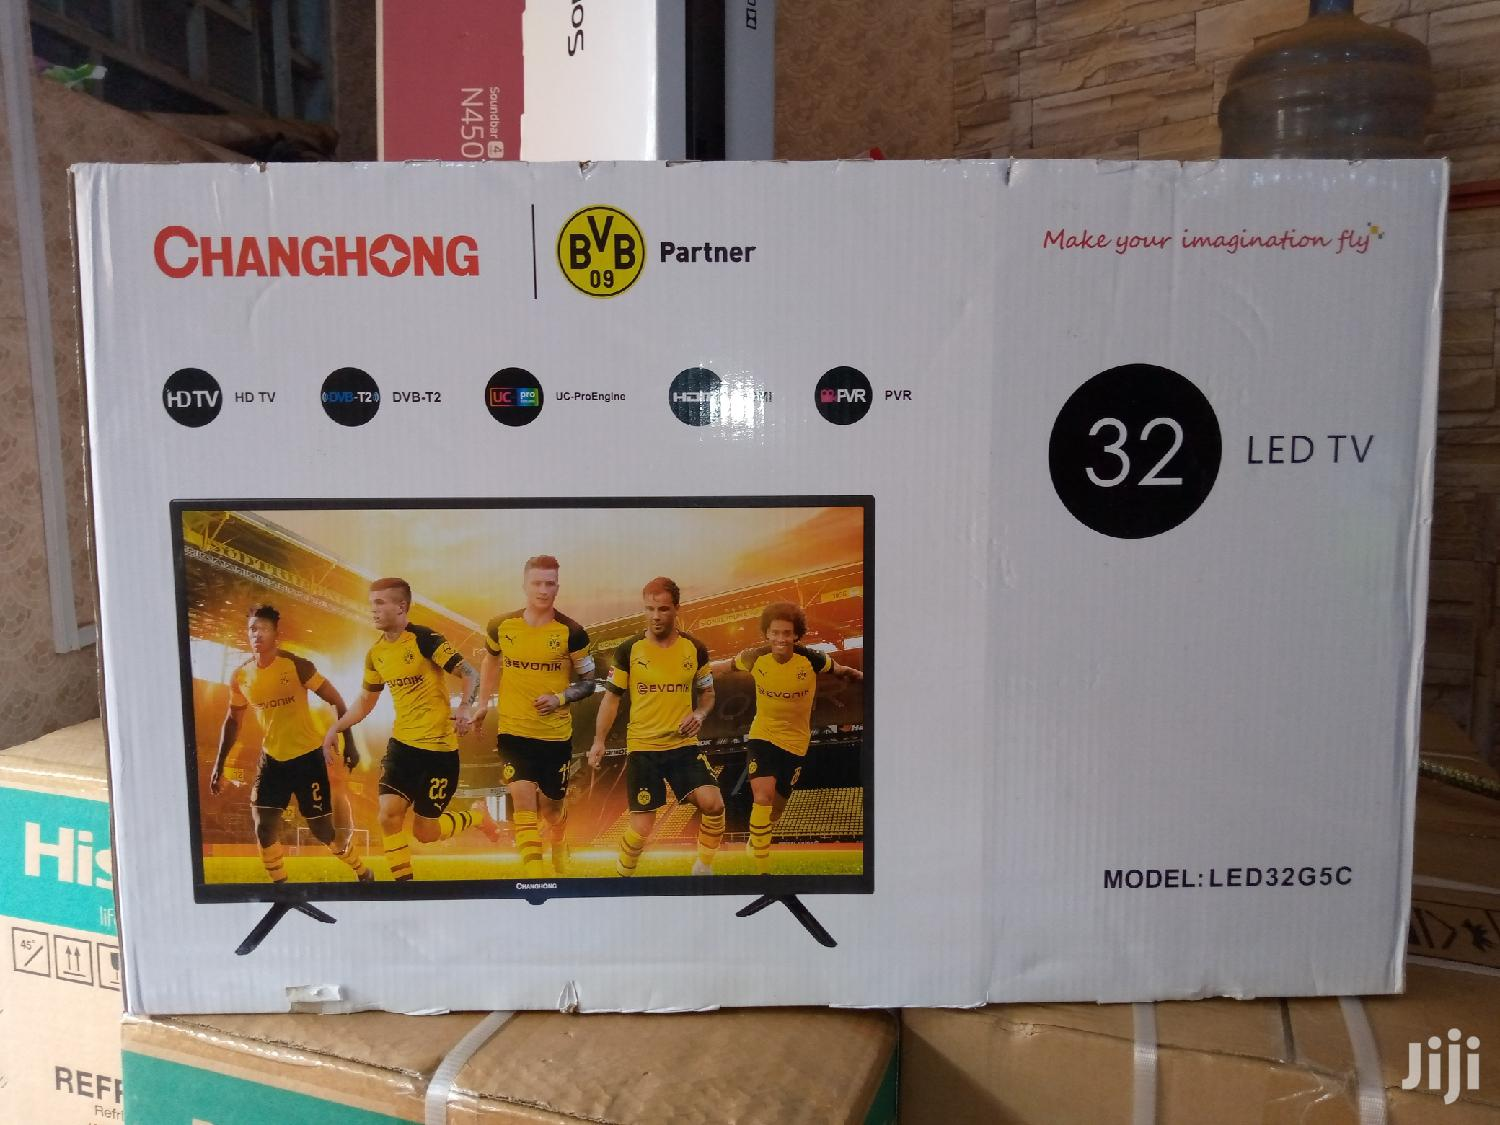 Changhong Tv 32 Inches